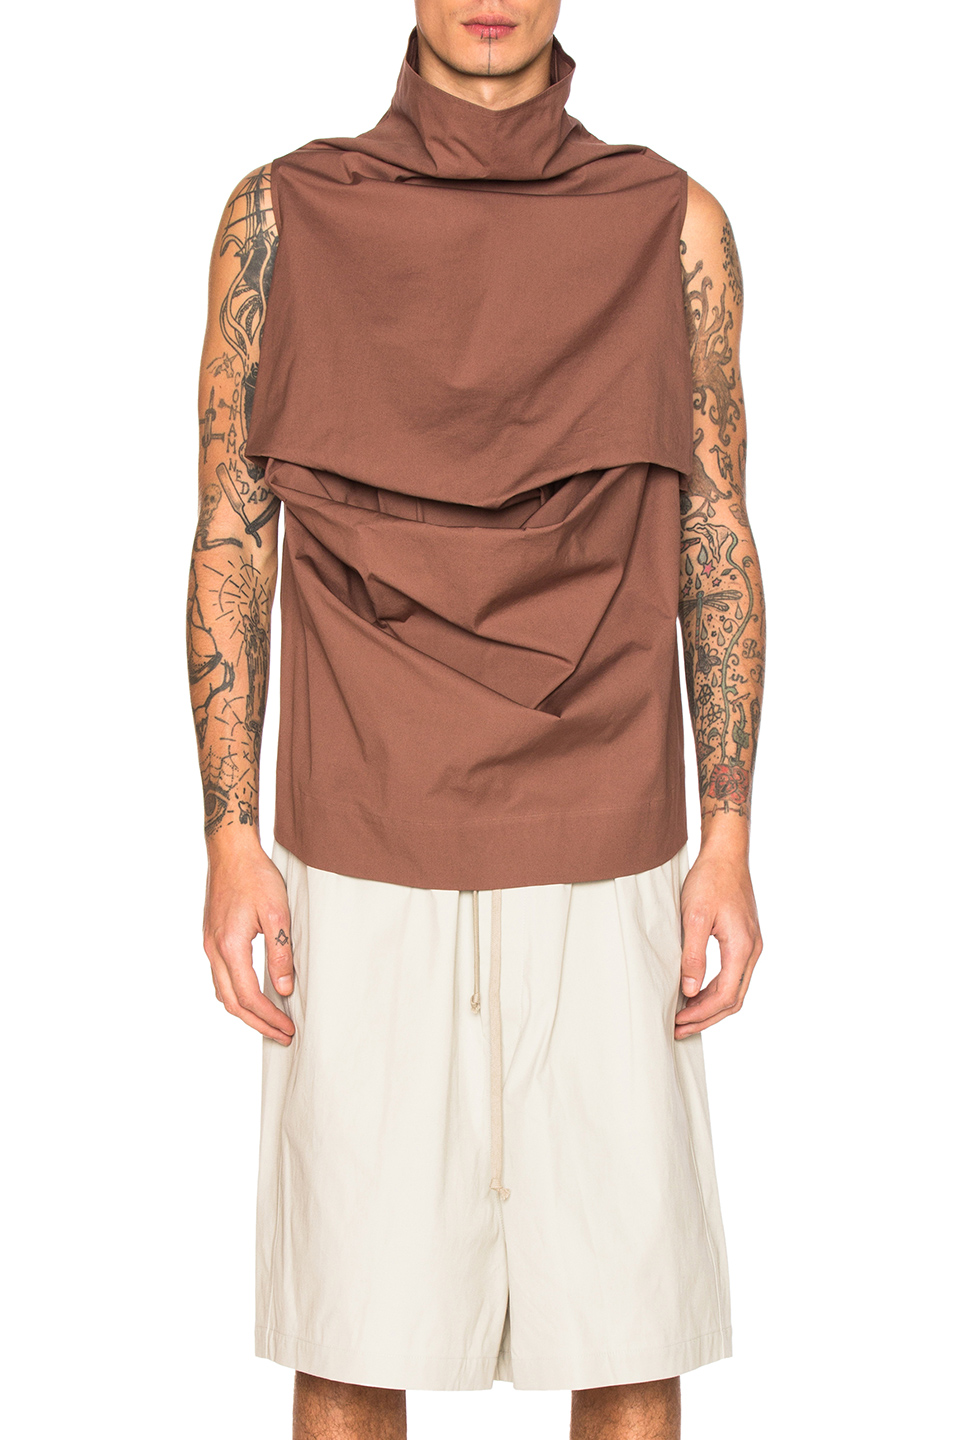 Rick Owens Pelican Top in Brown,Neutrals